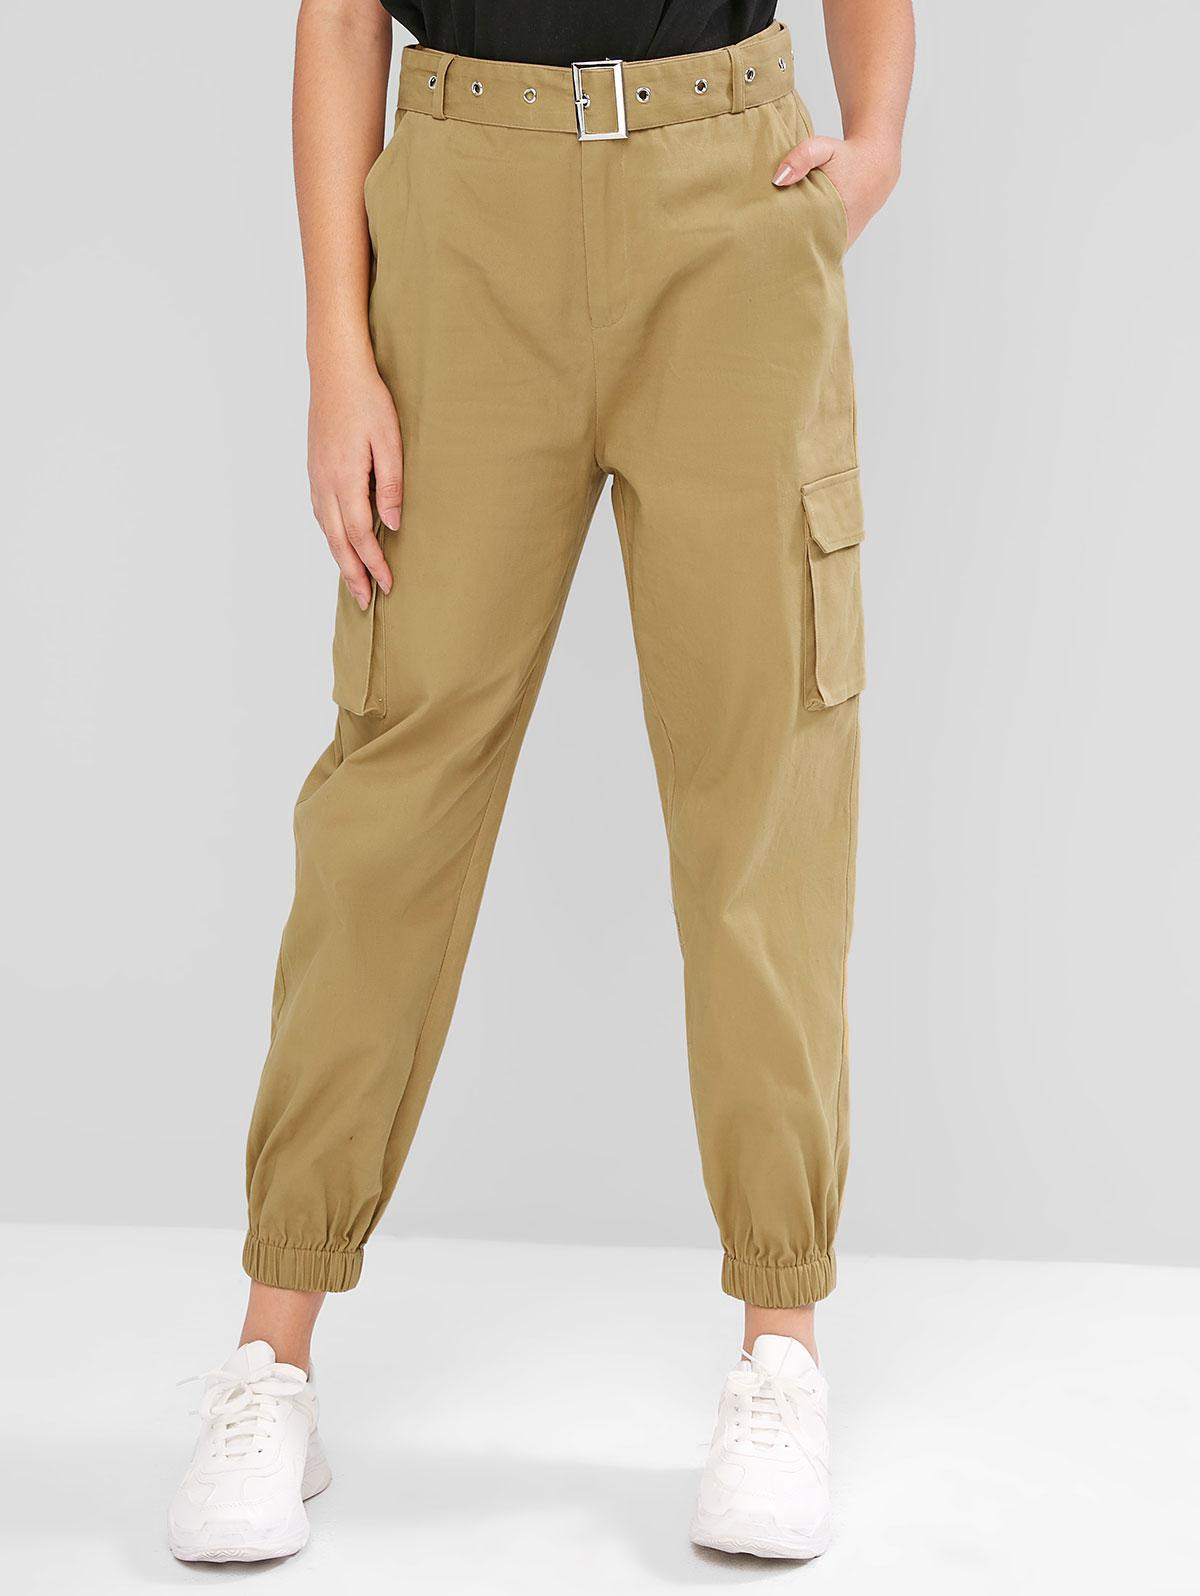 ZAFUL High Waisted Belted Flap Pockets Jogger Pants